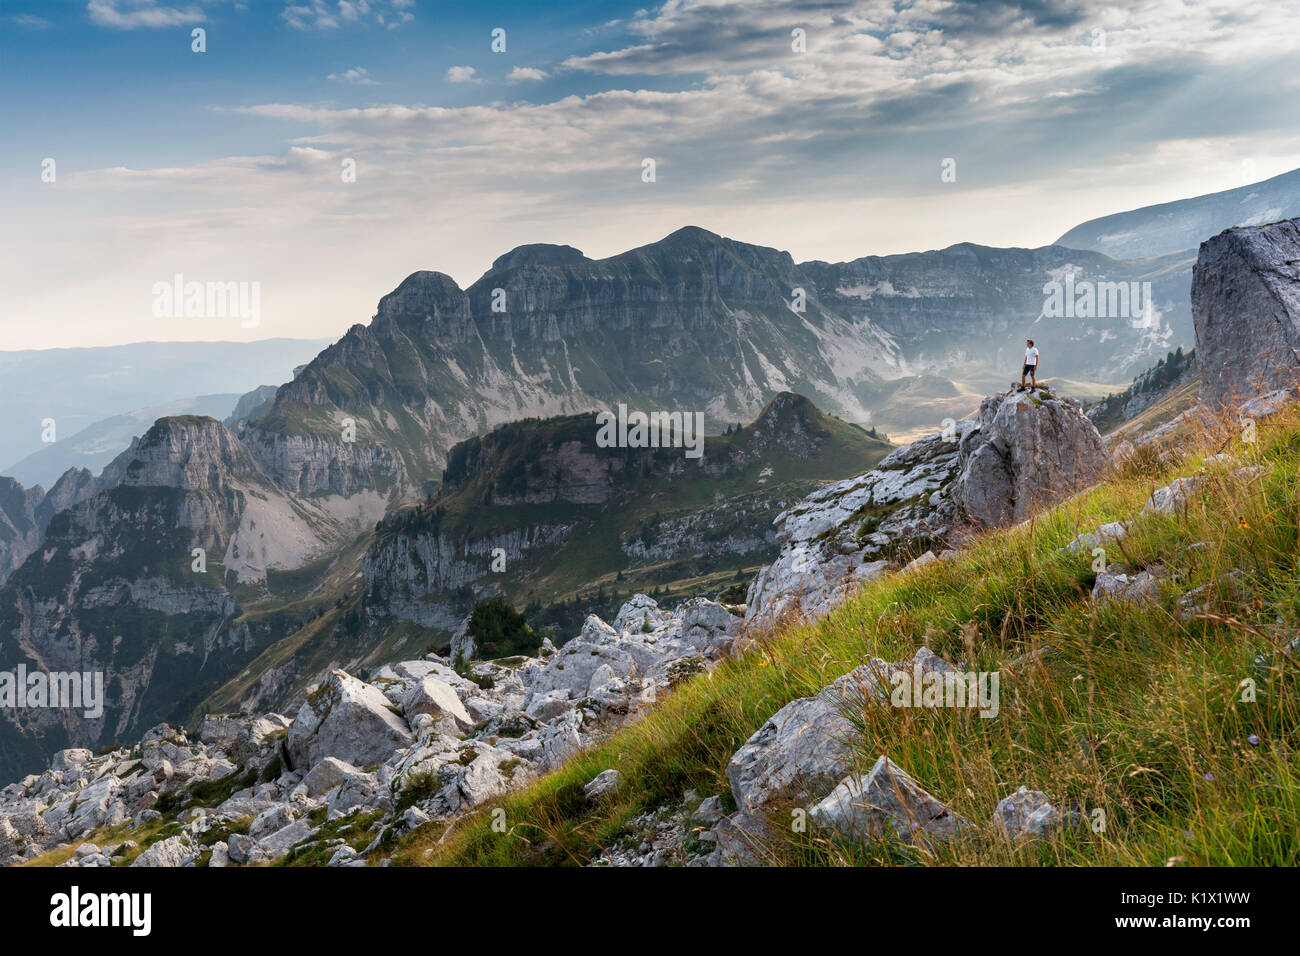 Europe, Italy, Veneto, Belluno. Landscape on the Piazza del Diavolo, Vette Feltrine. Dolomites, Belluno Dolomiti National Park - Stock Image